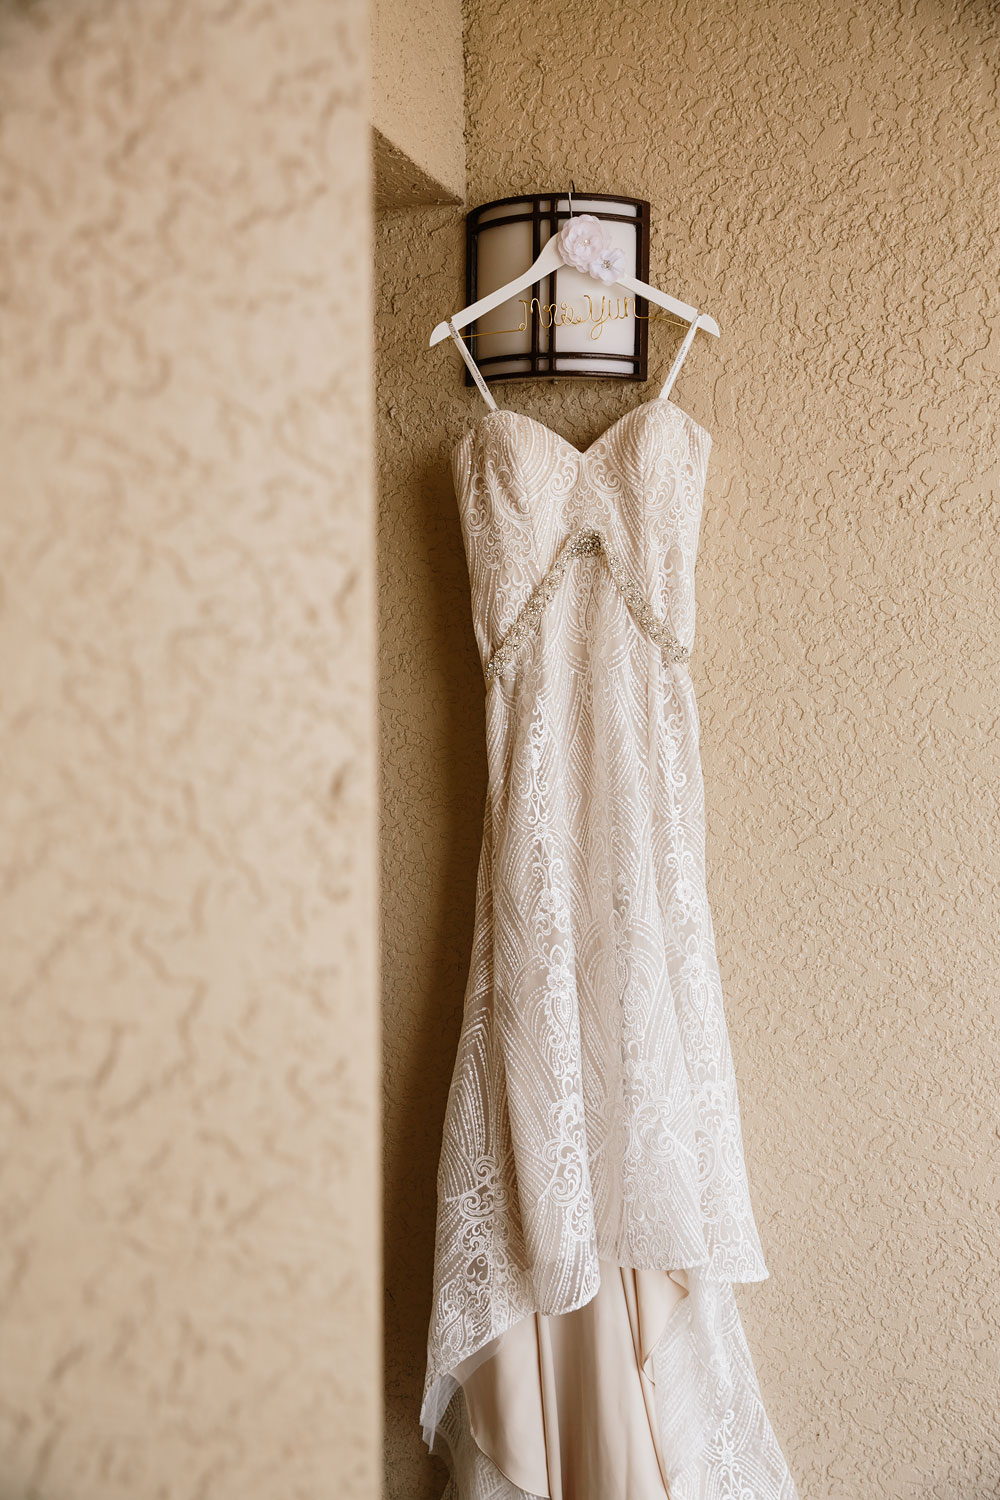 lacey wedding dress hanging against wall